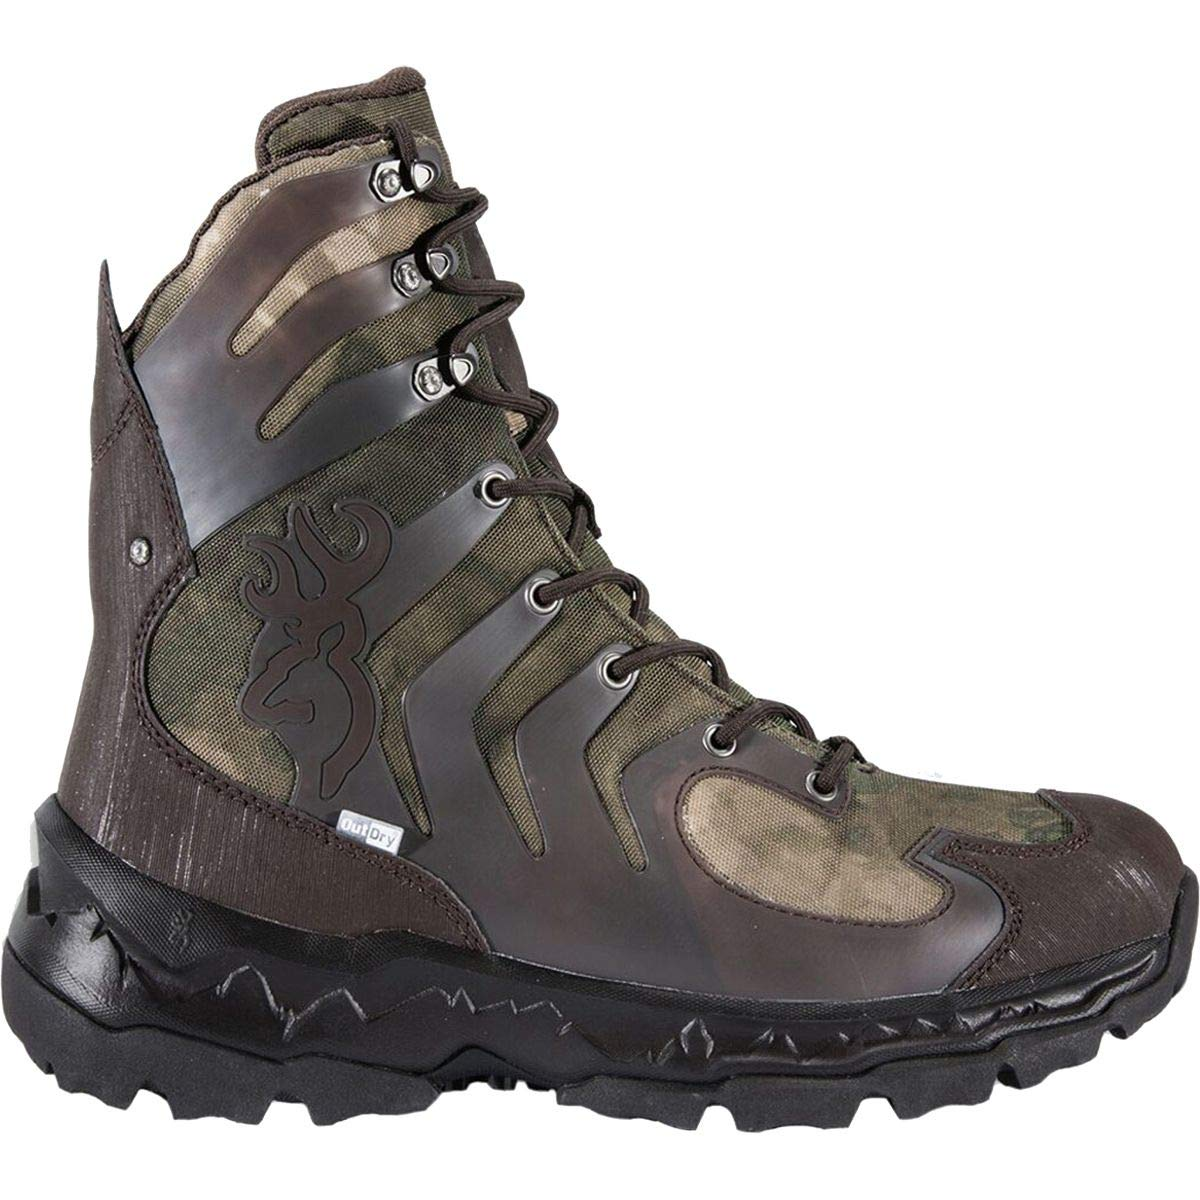 2567b984411 Browning Buck Shadow 8in 400g Insulated Boot - Men's